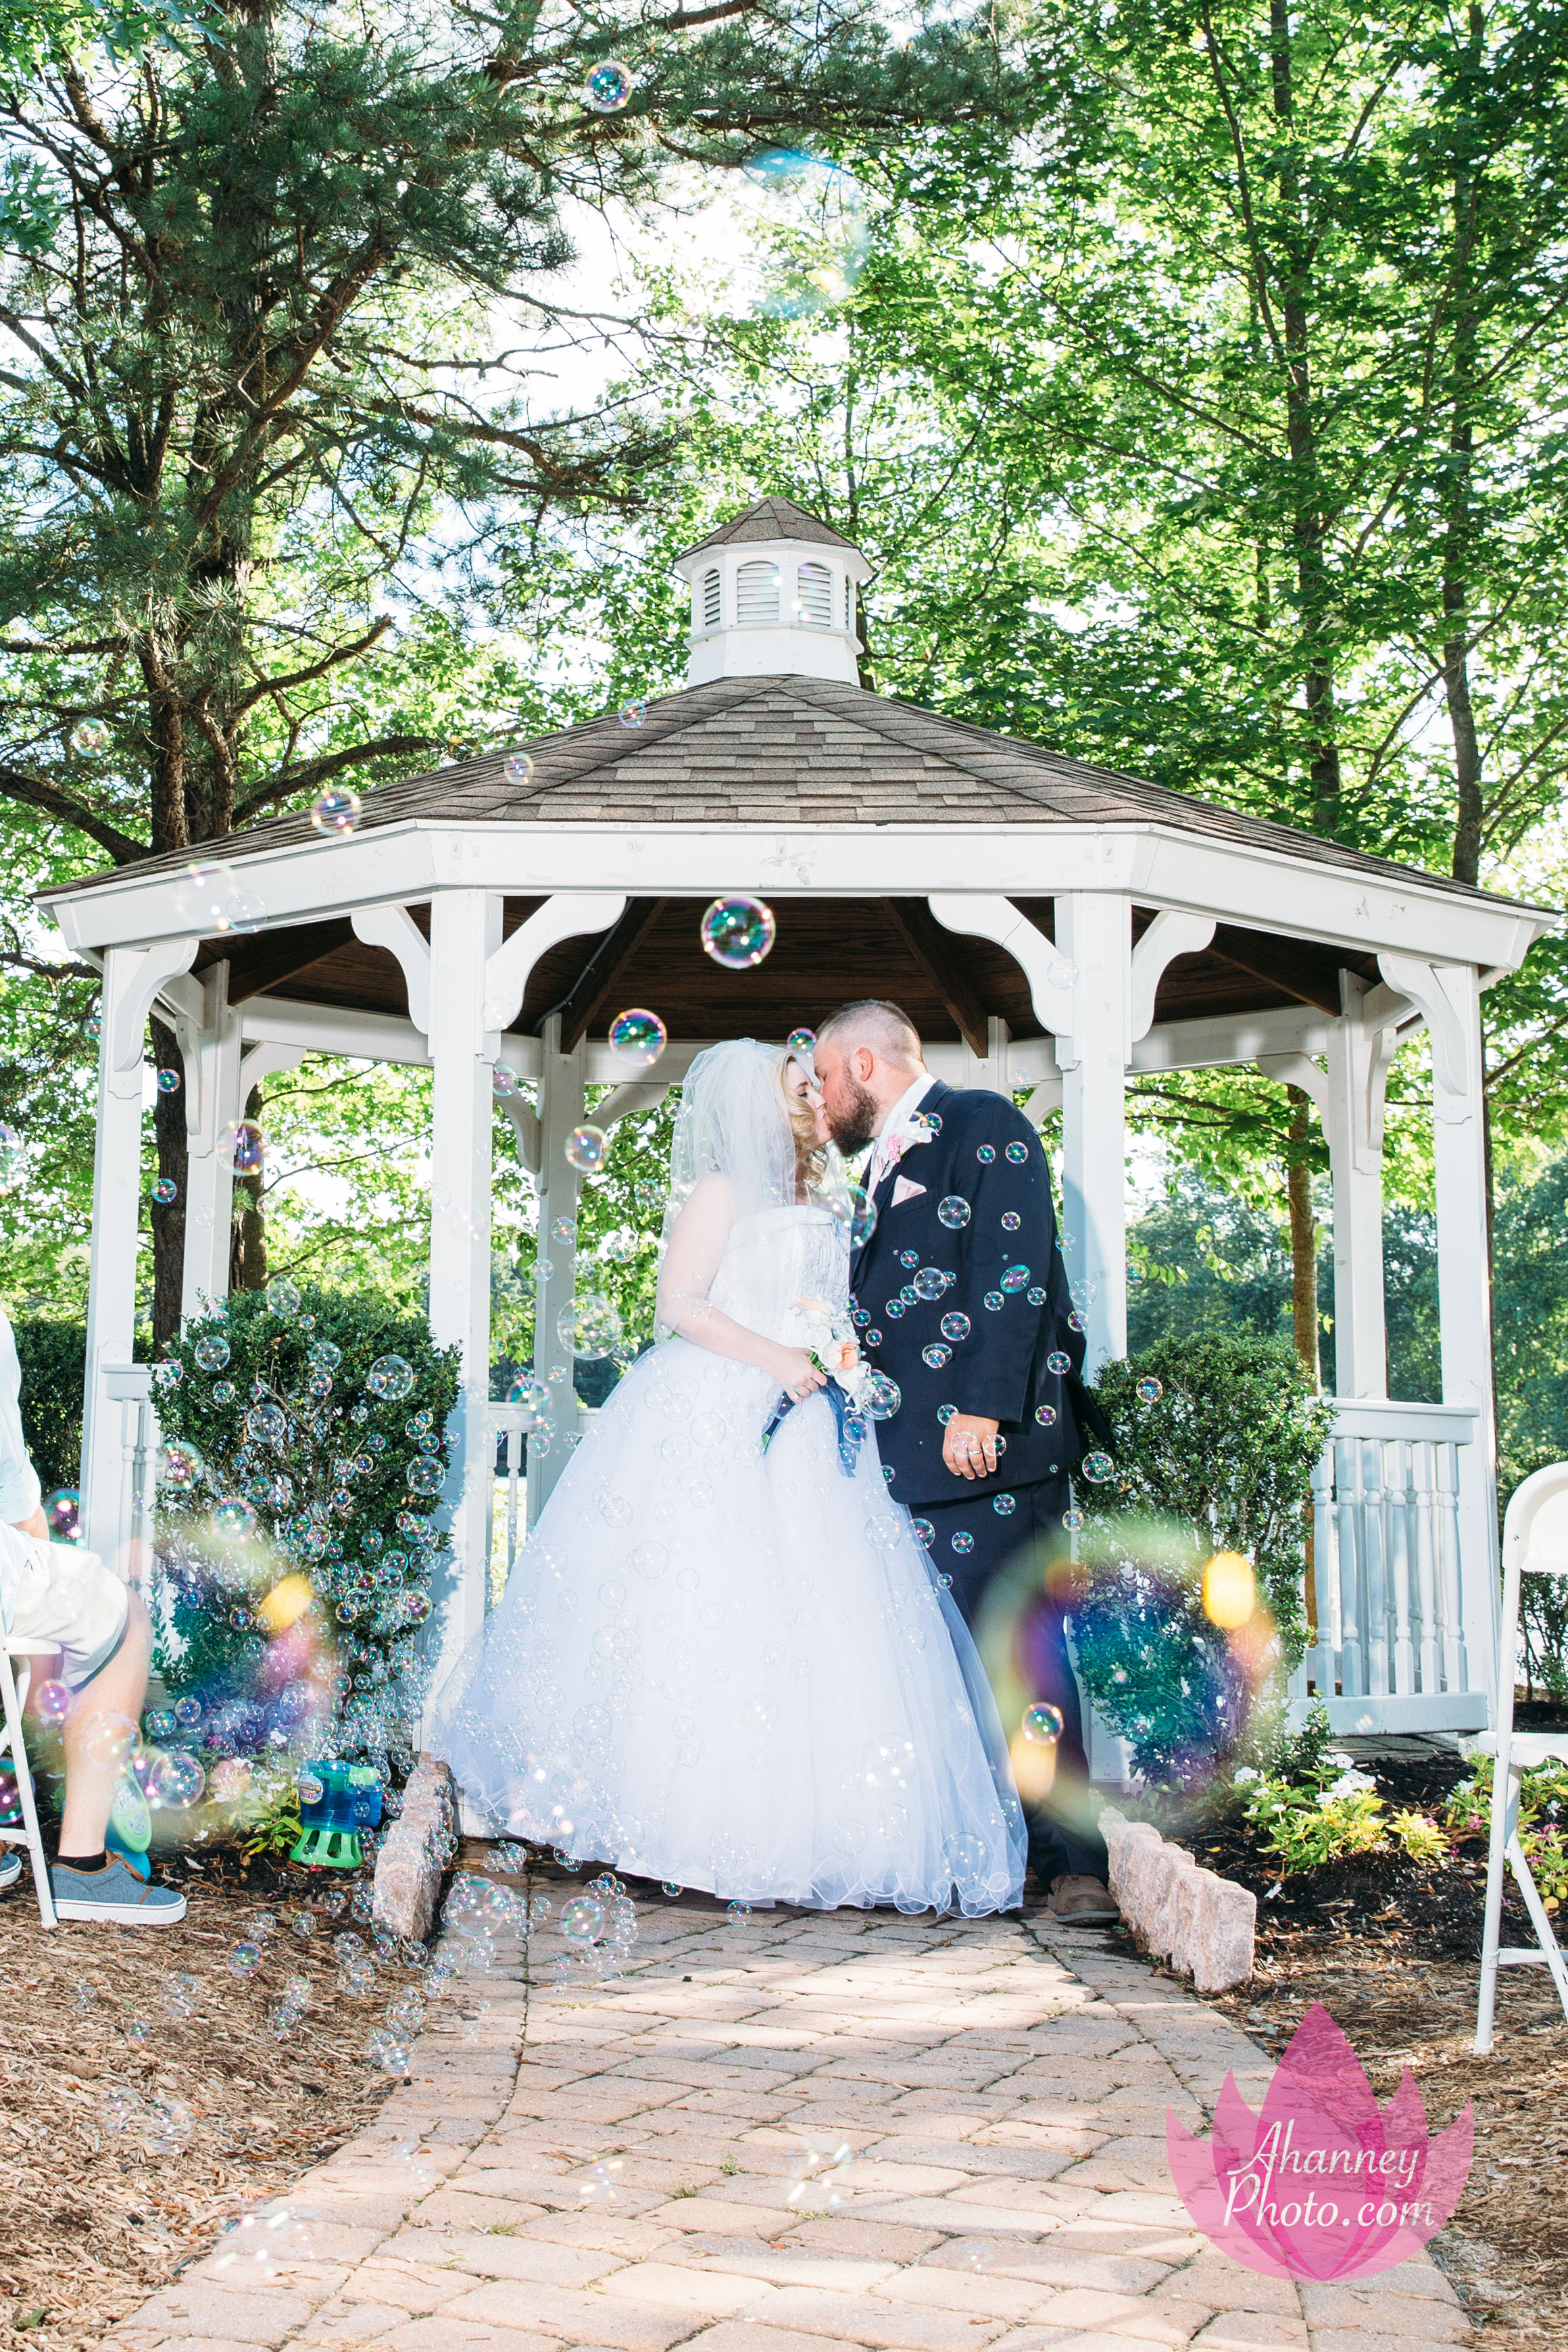 Wedding Photography of Bride and Groom in Gazebo Medford New Jersey Anastasia Hanney Photography AHanneyPhoto